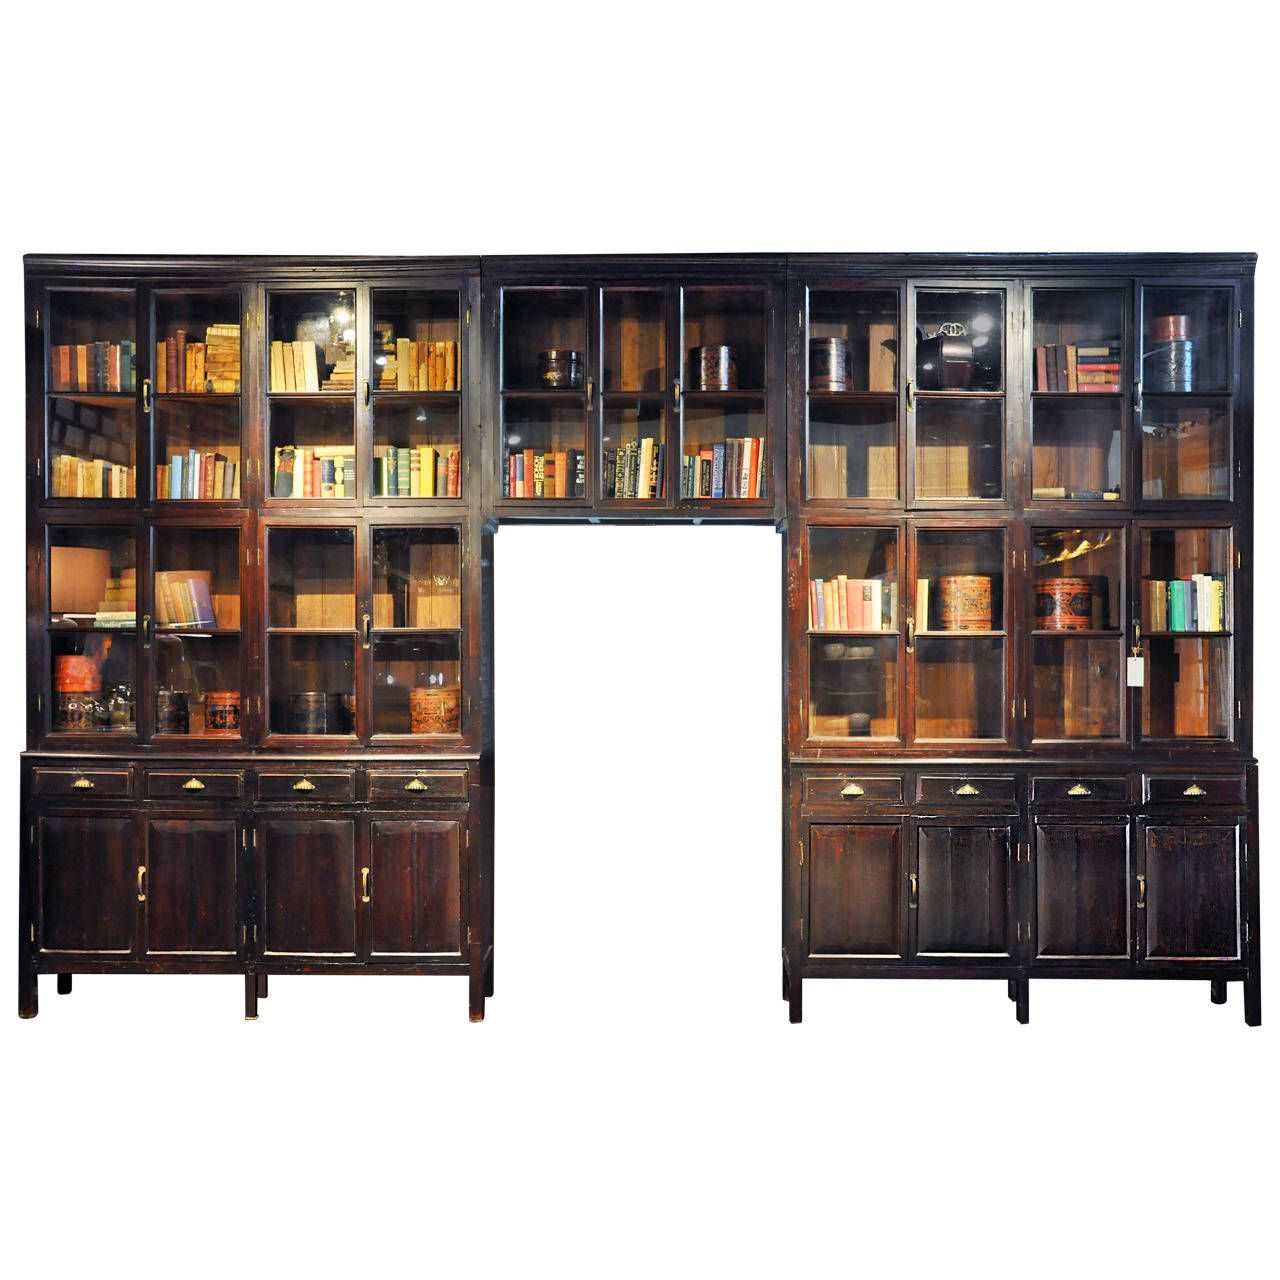 Monumental British Colonial Cabinet